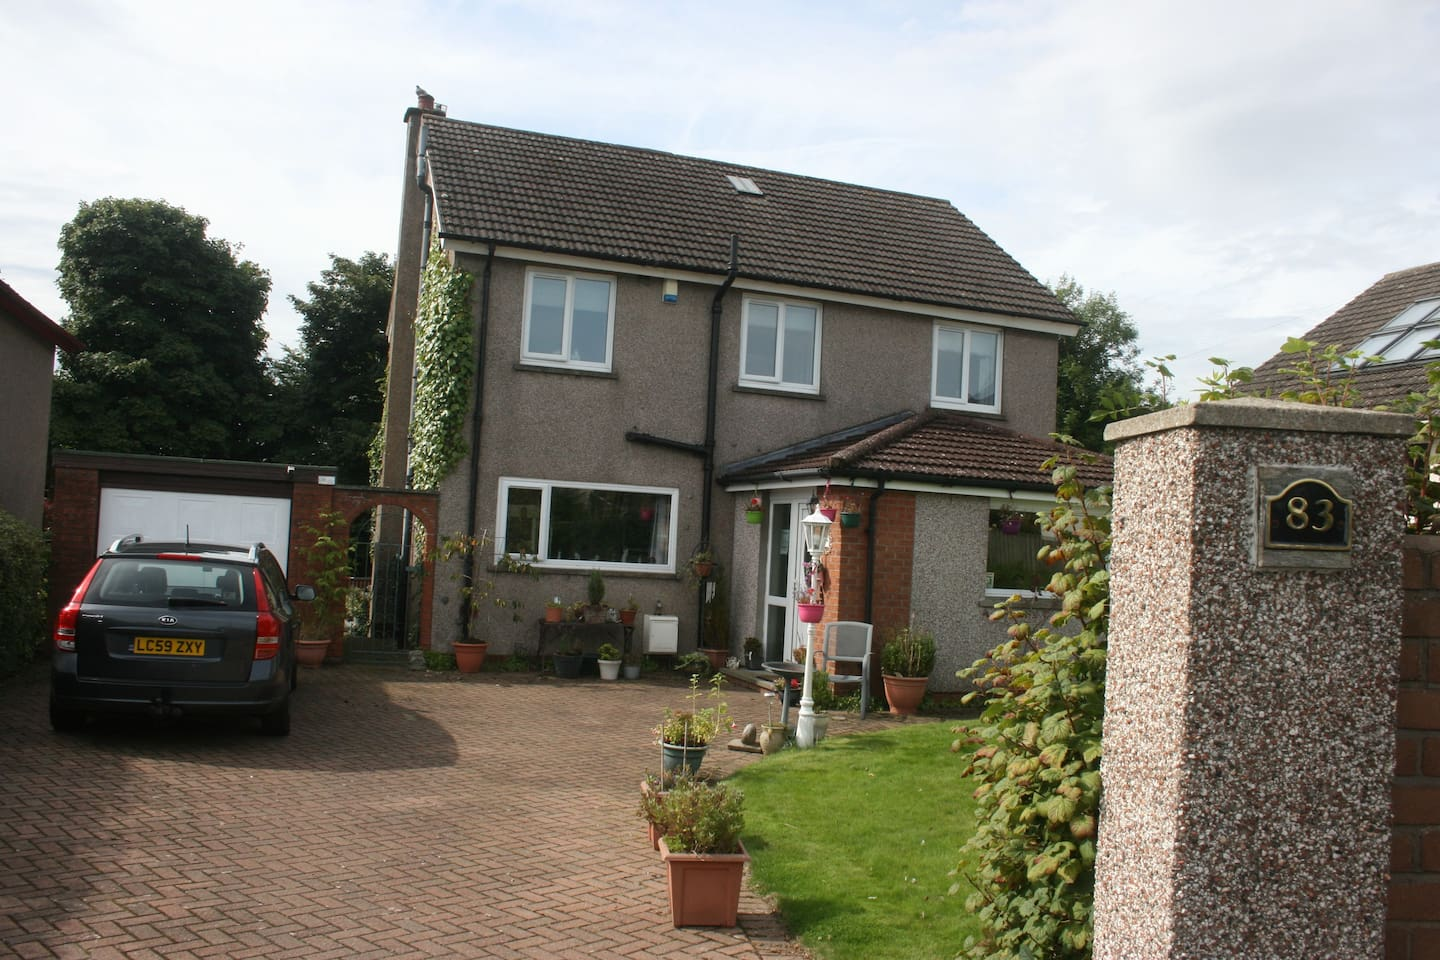 Rear of house which includes access drive & main door.